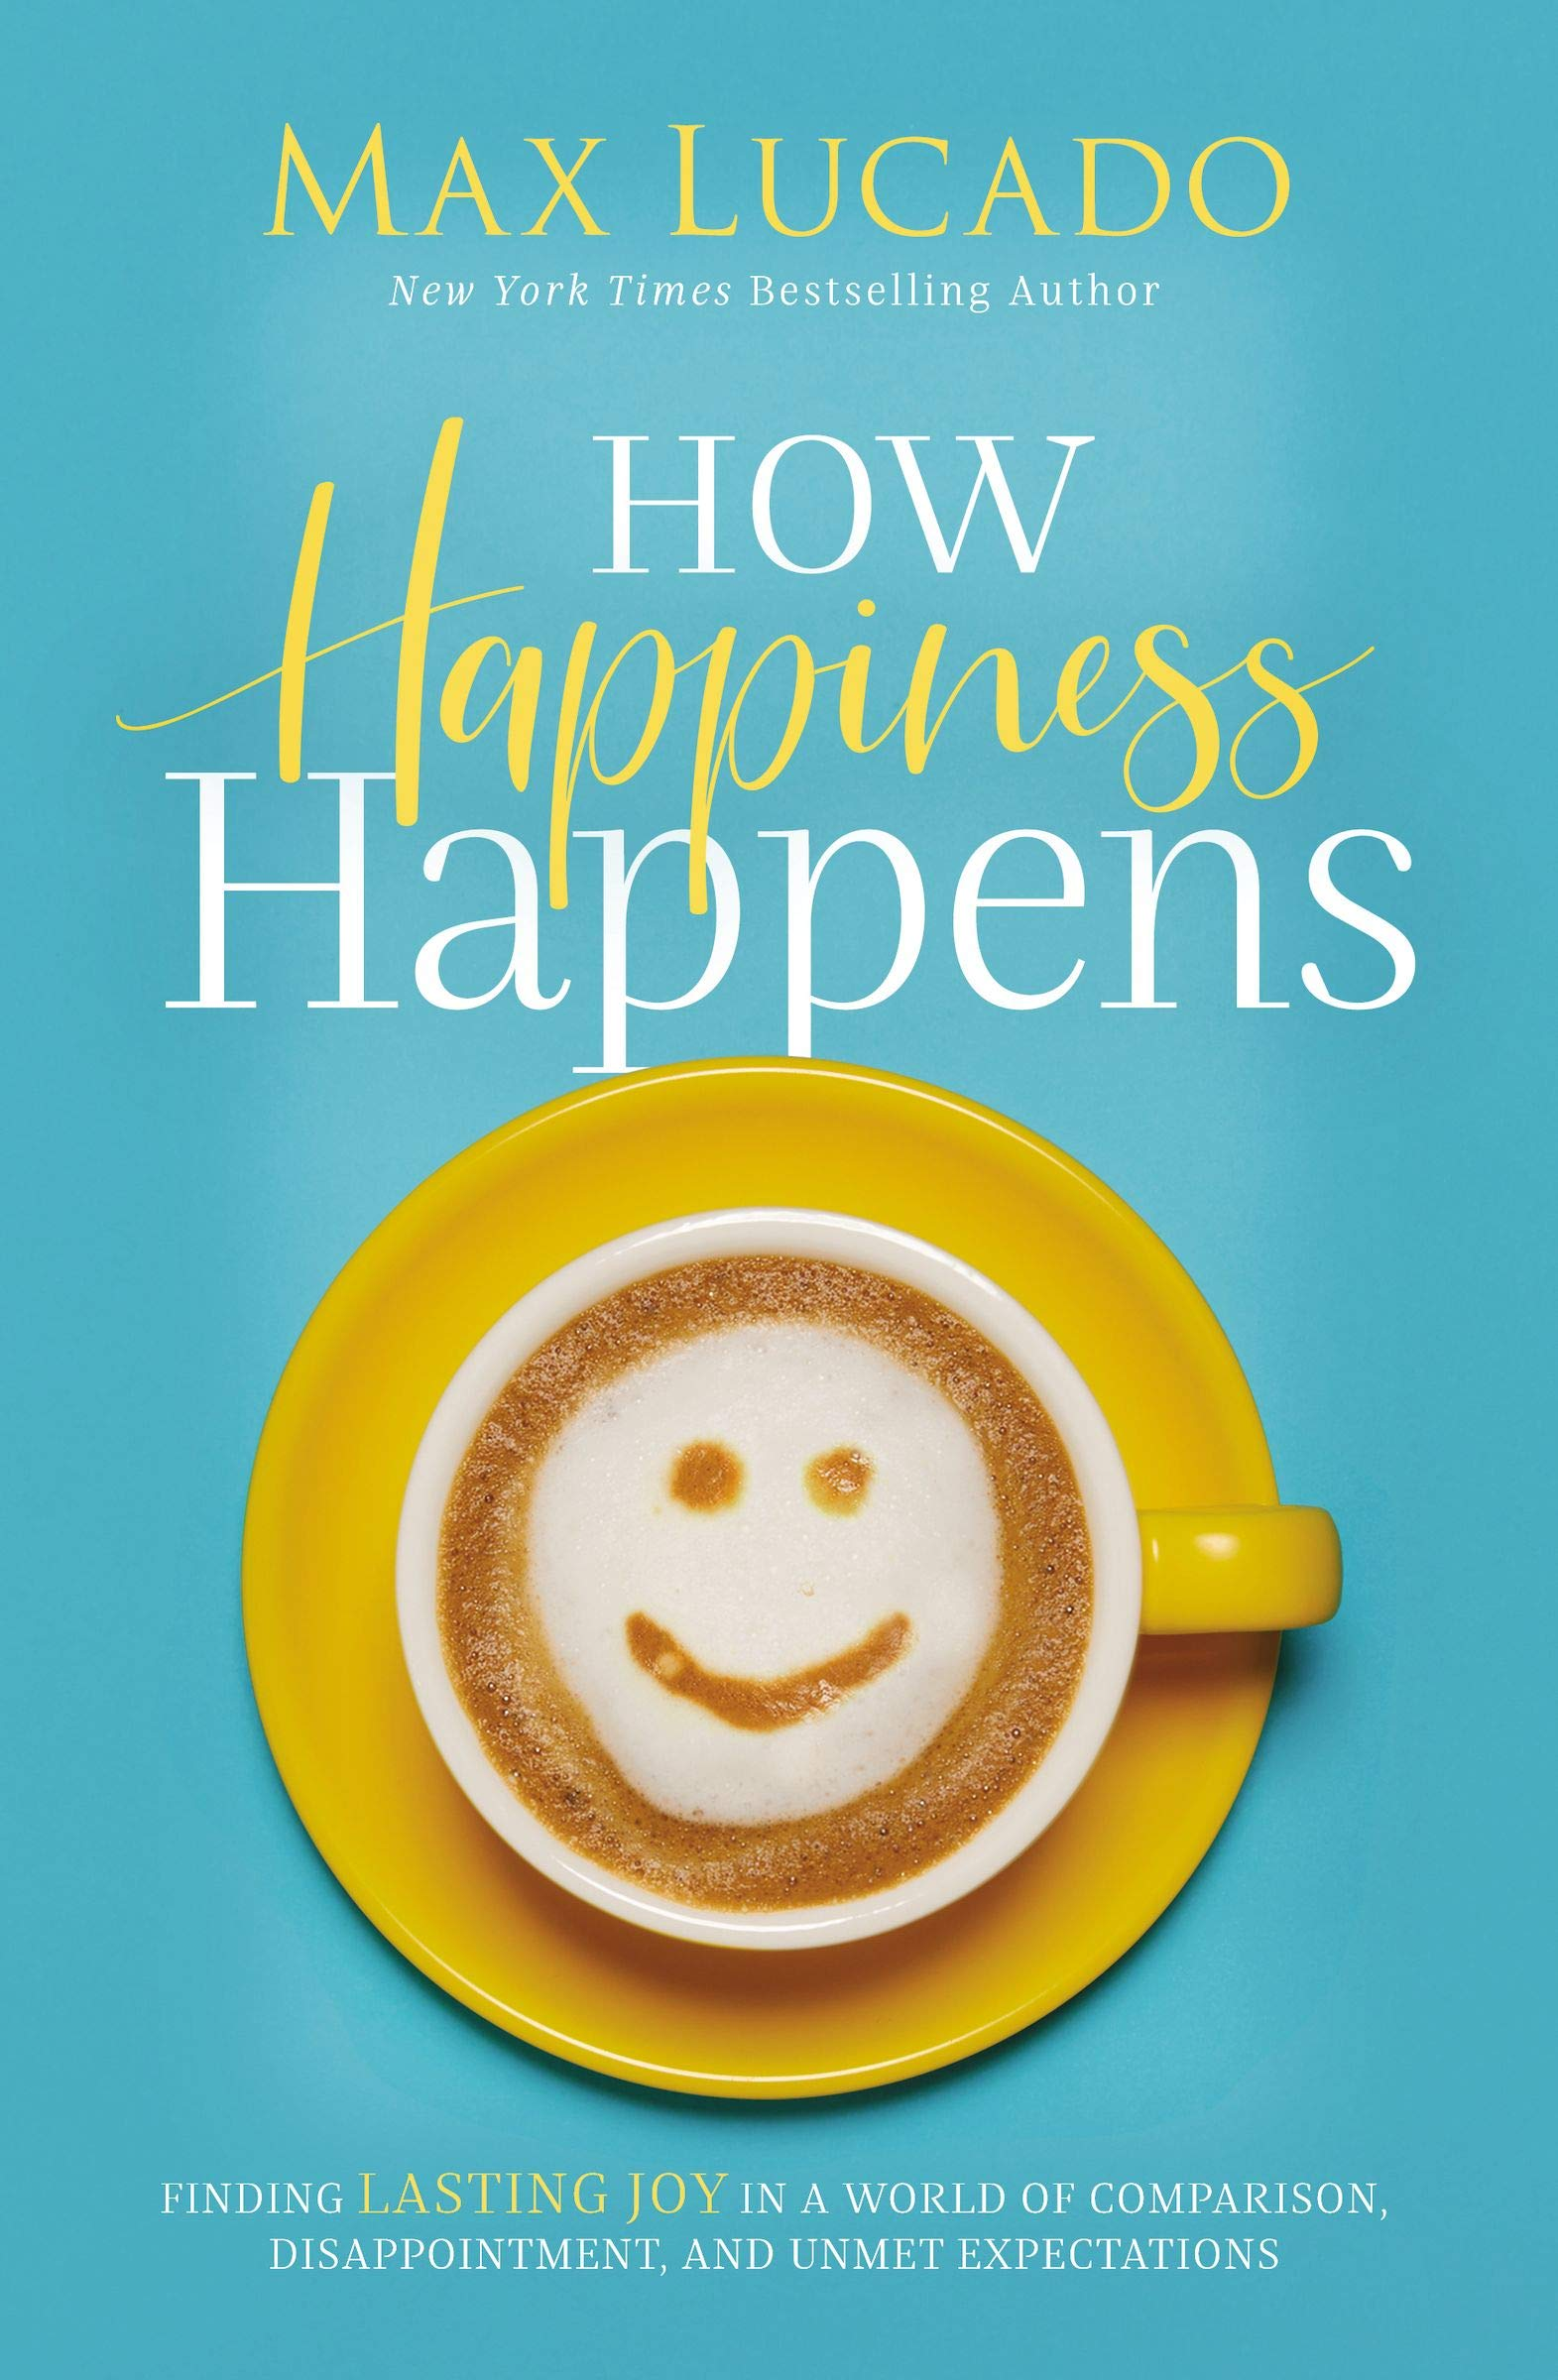 ROCKONLINE | New Creation Church | NCC | Joseph Prince | How Happiness Happens: Finding Lasting Joy In A World Of Comparison, Disappointment, And Unmet Expectations | ROCK Bookshop | ROCK Bookstore | Star Vista | Disappointment | Christian Living | Max Lucado | Free delivery for Singapore Orders above $50.